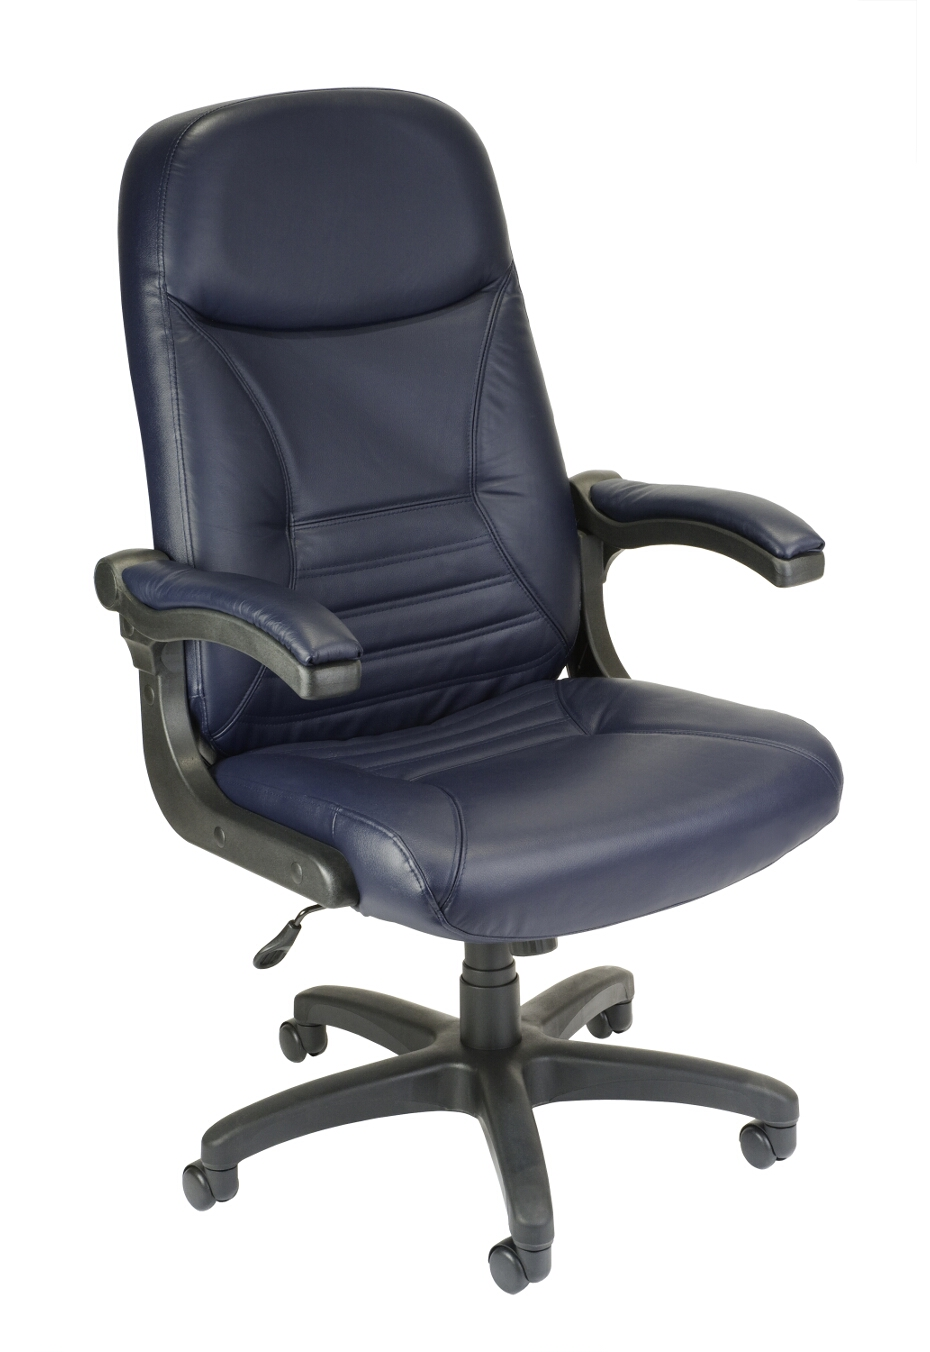 Pleasing Ofm Model 550 L Mobilearm Leather Executive Office Chair Dailytribune Chair Design For Home Dailytribuneorg